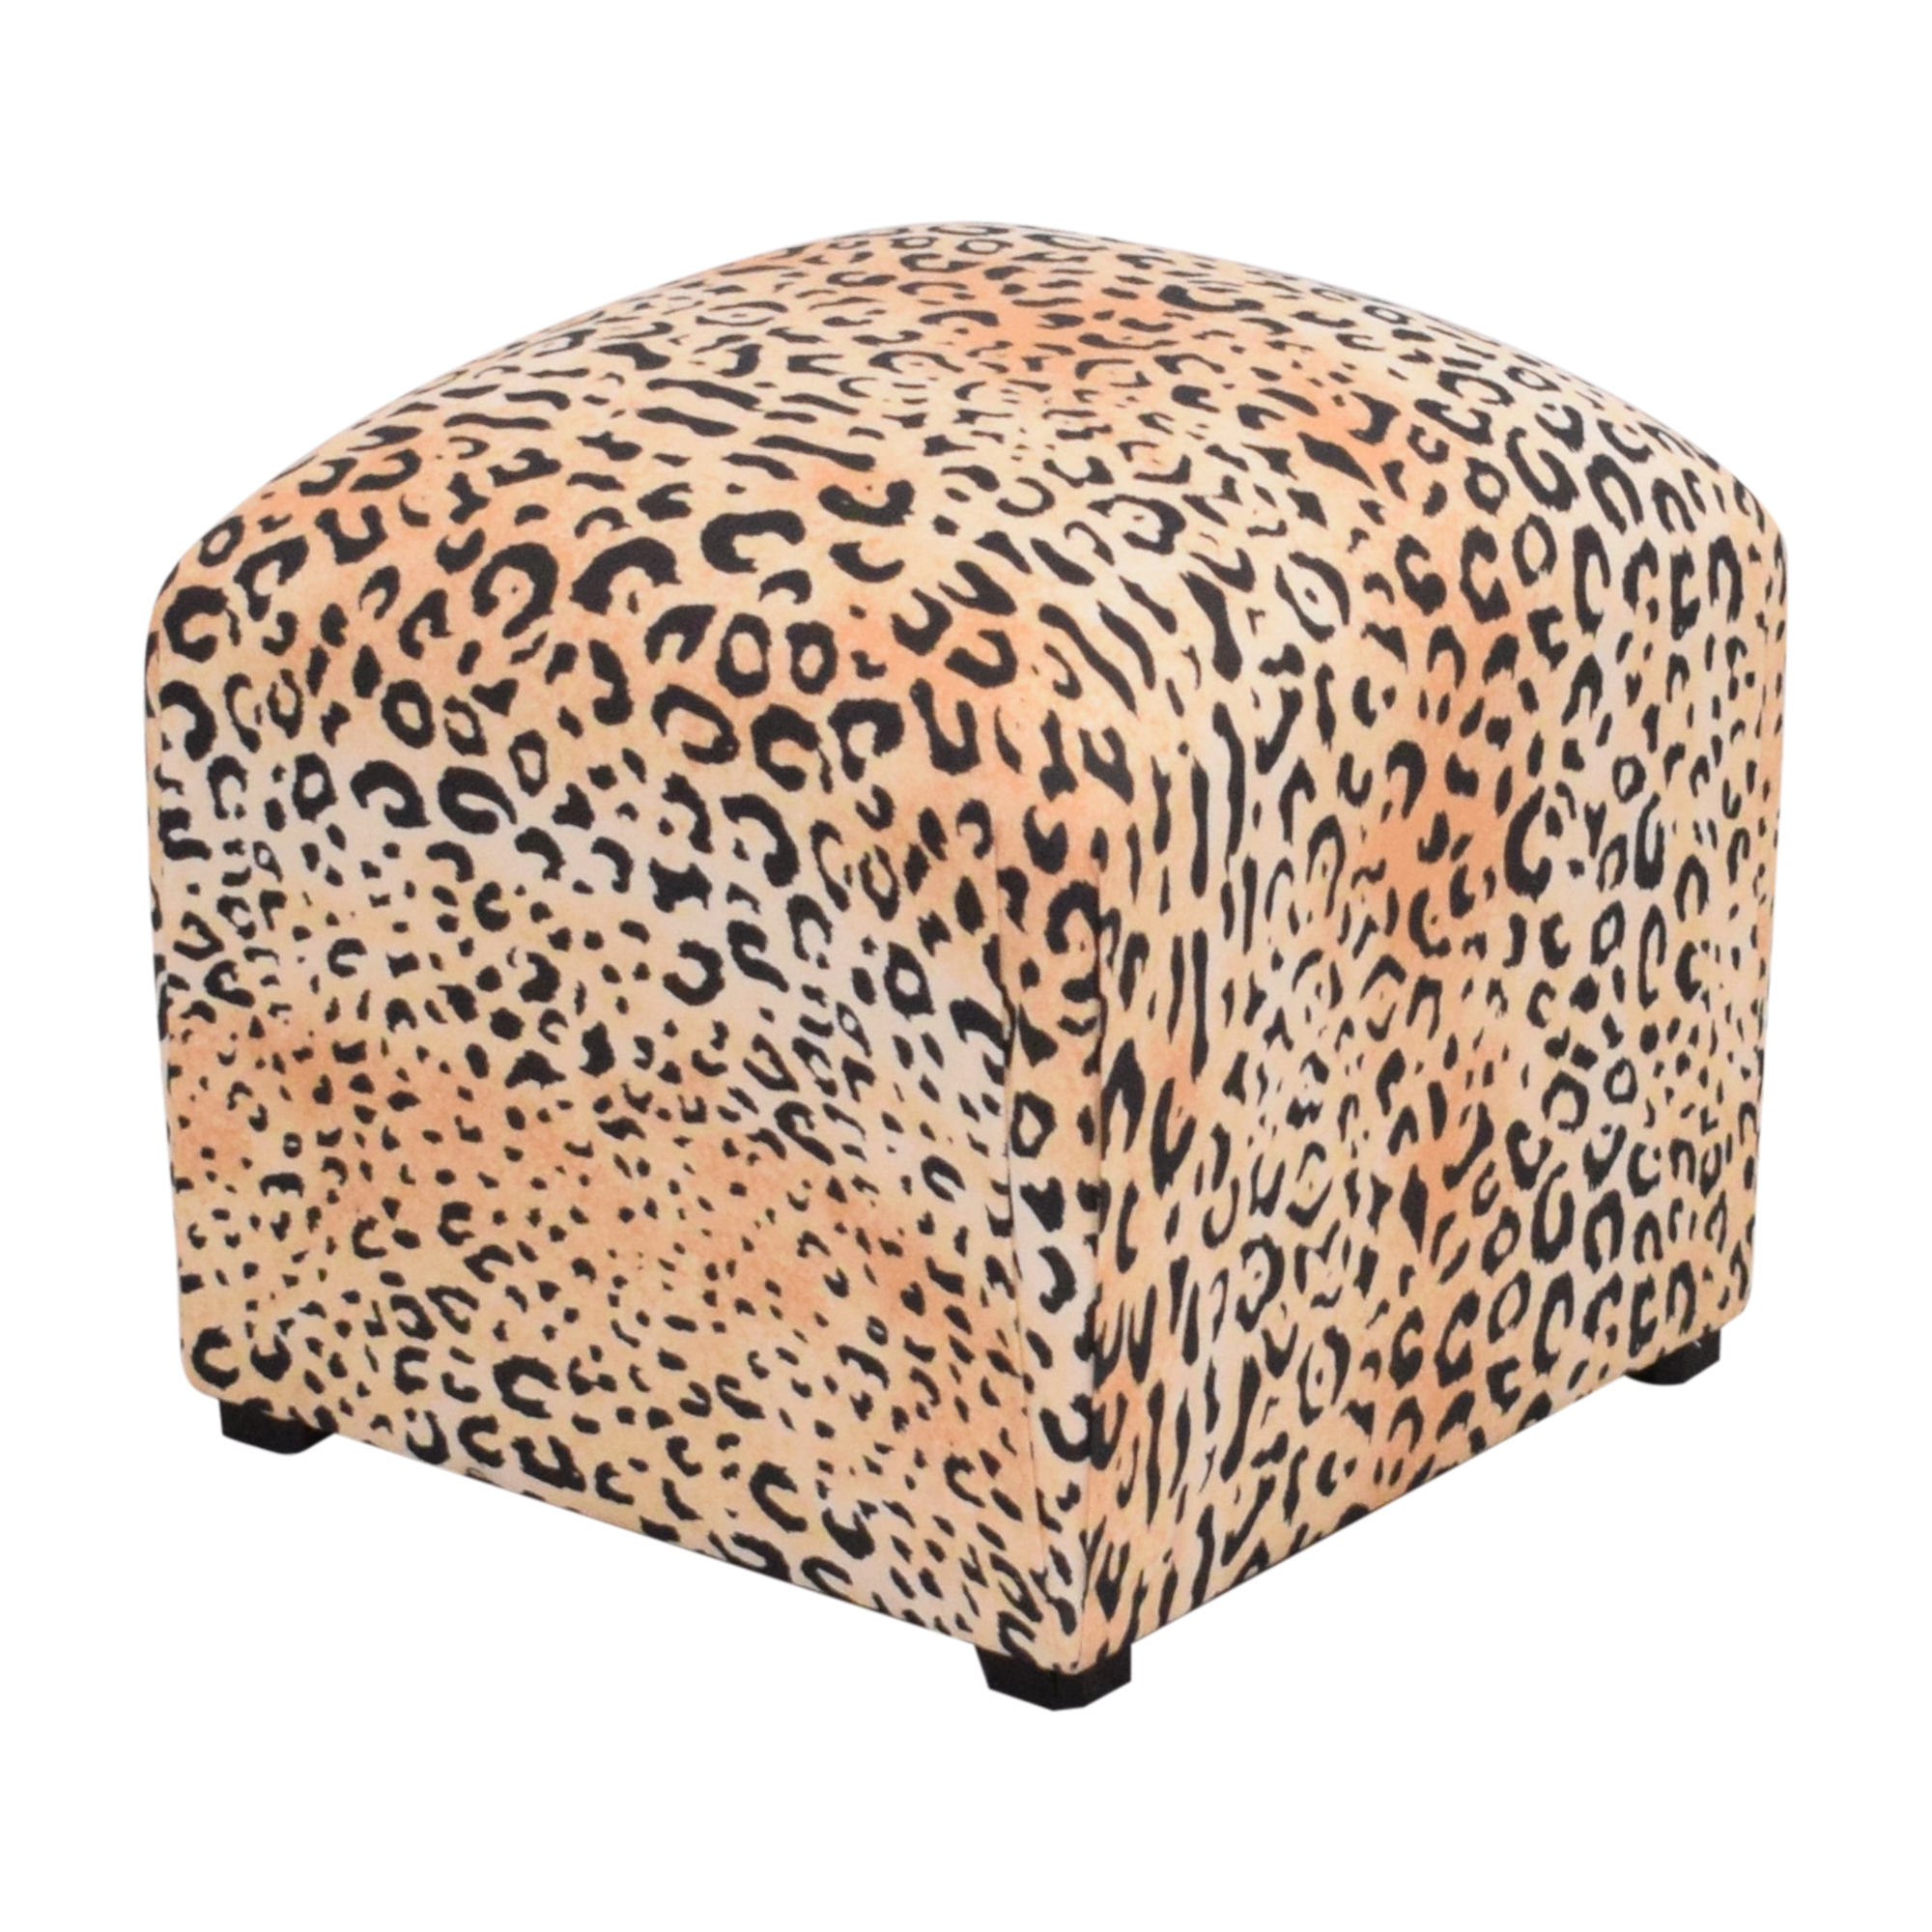 The Inside The Inside Deco Ottoman price